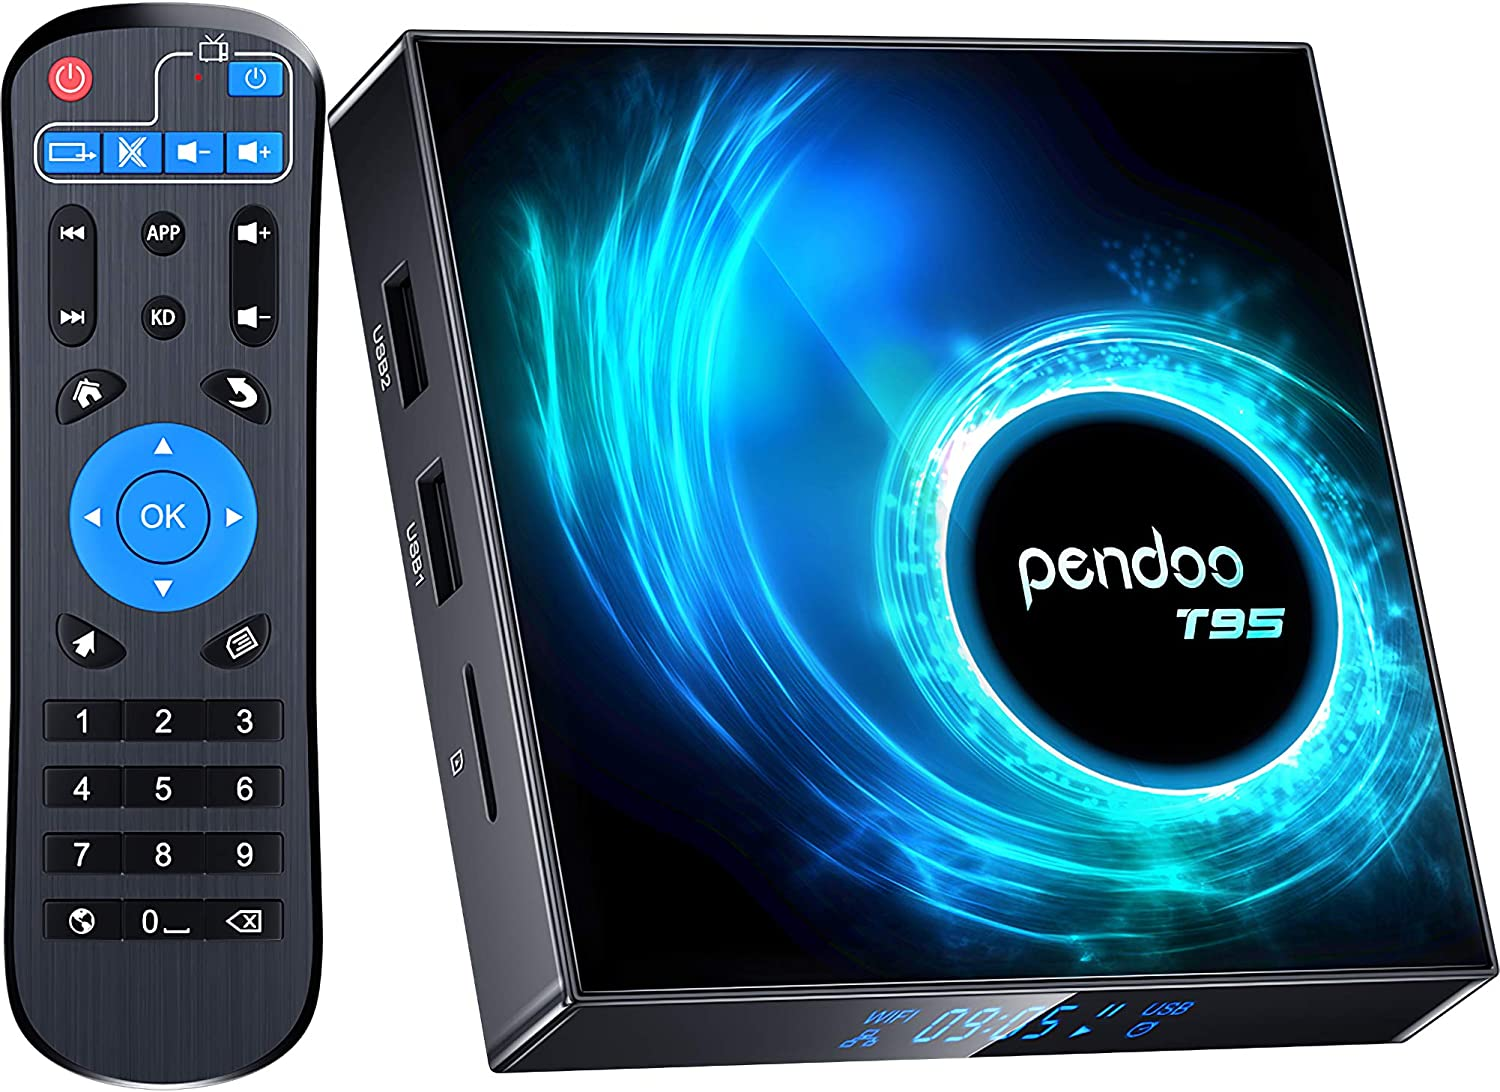 pendoo Android 10.0 TV Box, T95 Android TV Box 4GB RAM 32GB ROM Allwinner H616 Quad-core 64bit, Support 2.4G/5GHz Dual WiFi Bluetooth 6K/4K Ultra HD/ 3D/ H.265 Android Box